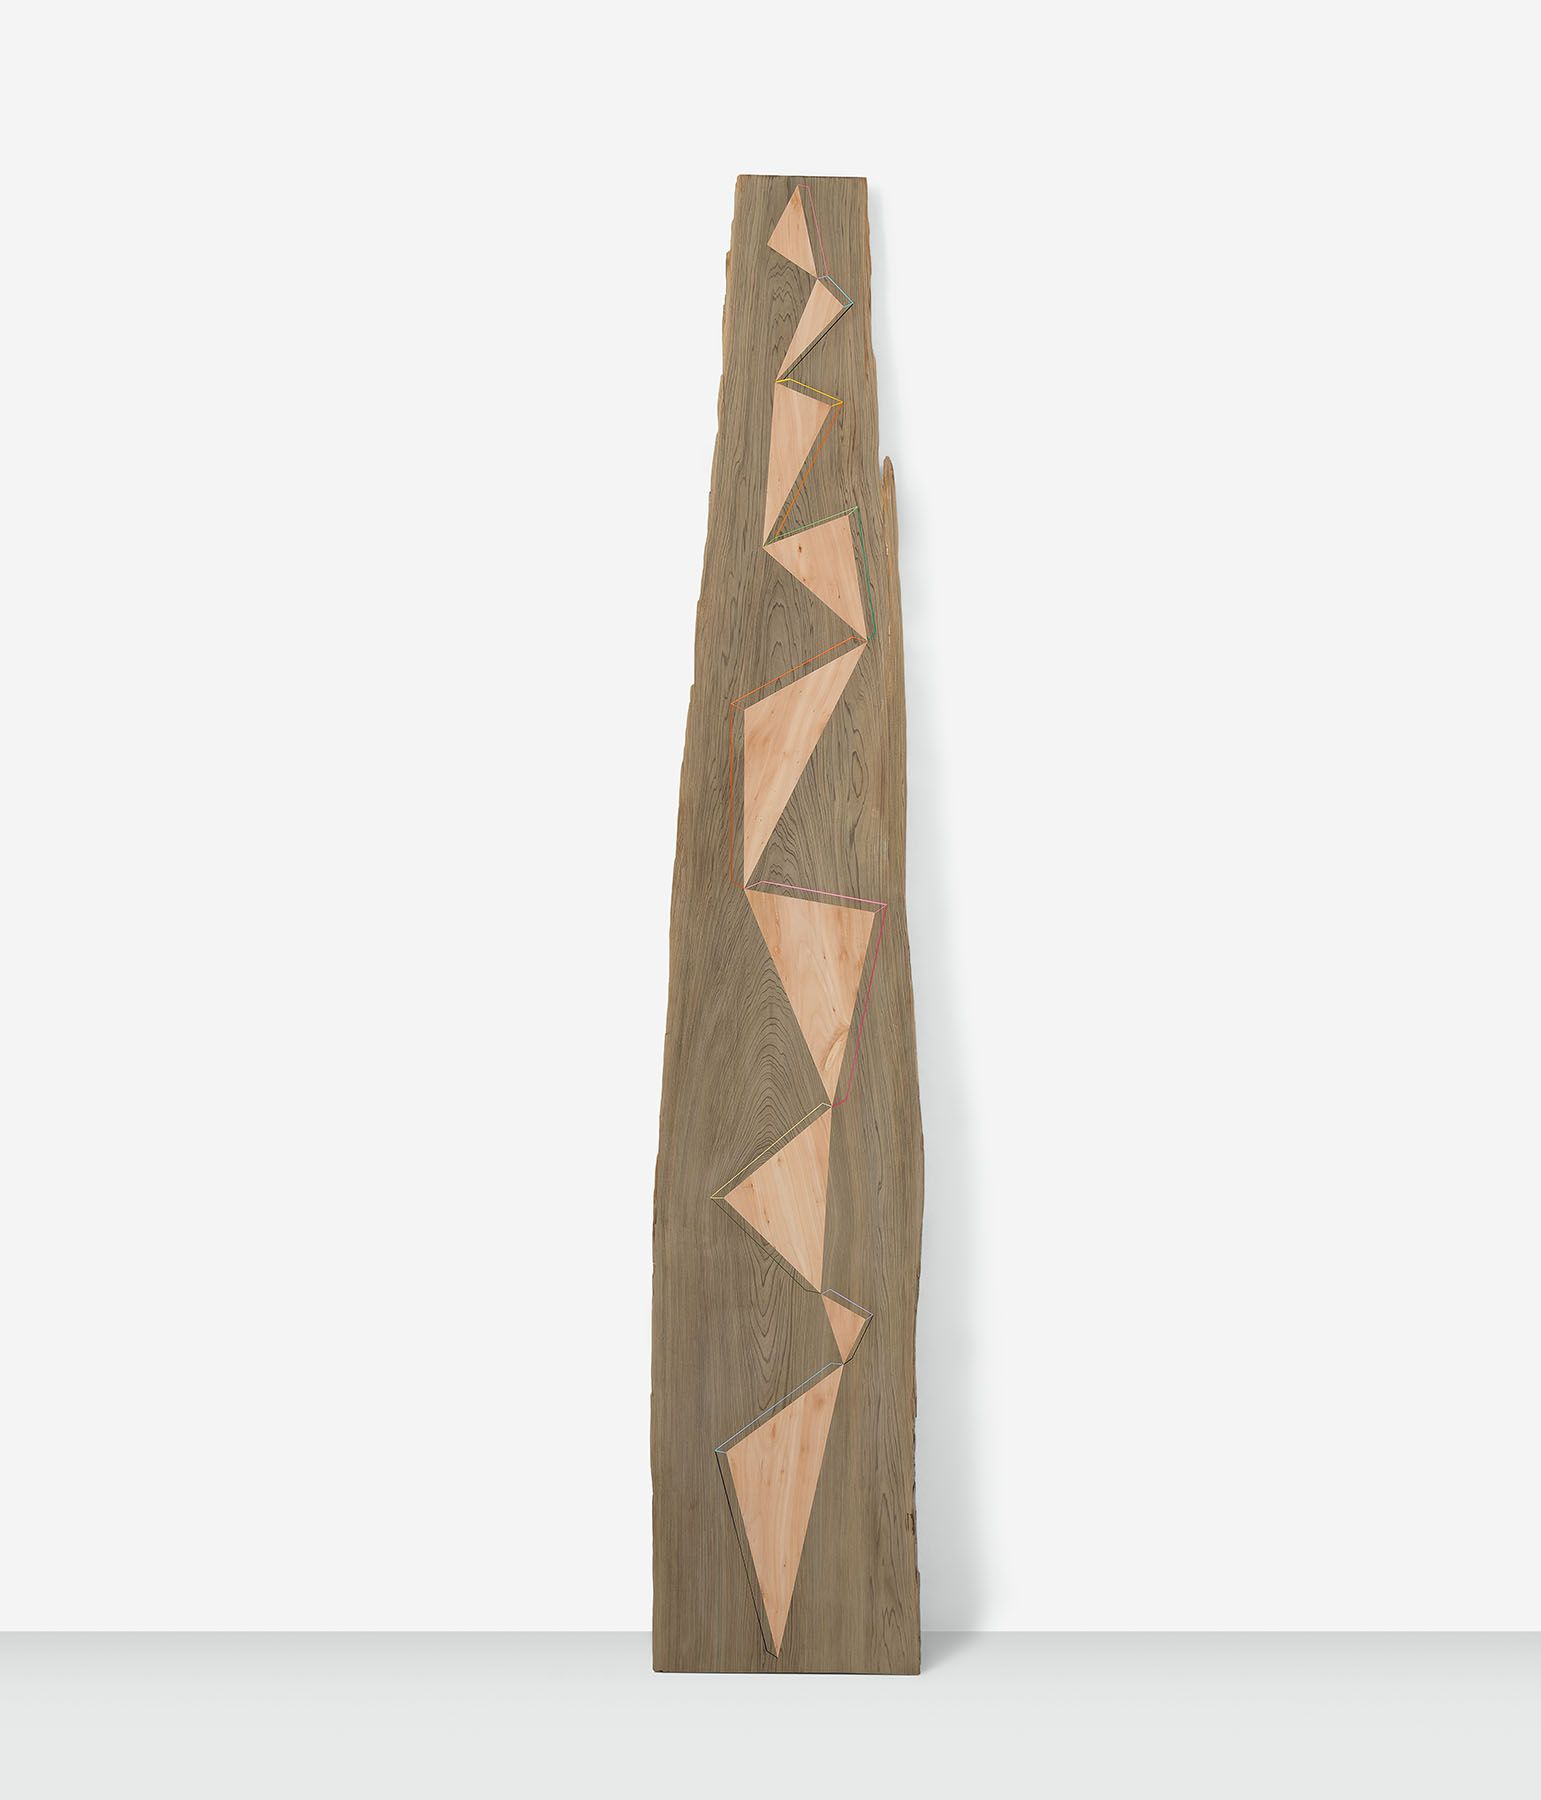 Balancing Act, 2018, Cypress with cherry inlay and acrylic, 103 1/2 x 18 1/2 x 1 1/2 inches, 262.9 x 47 x 3.8 cm, MMG#30713